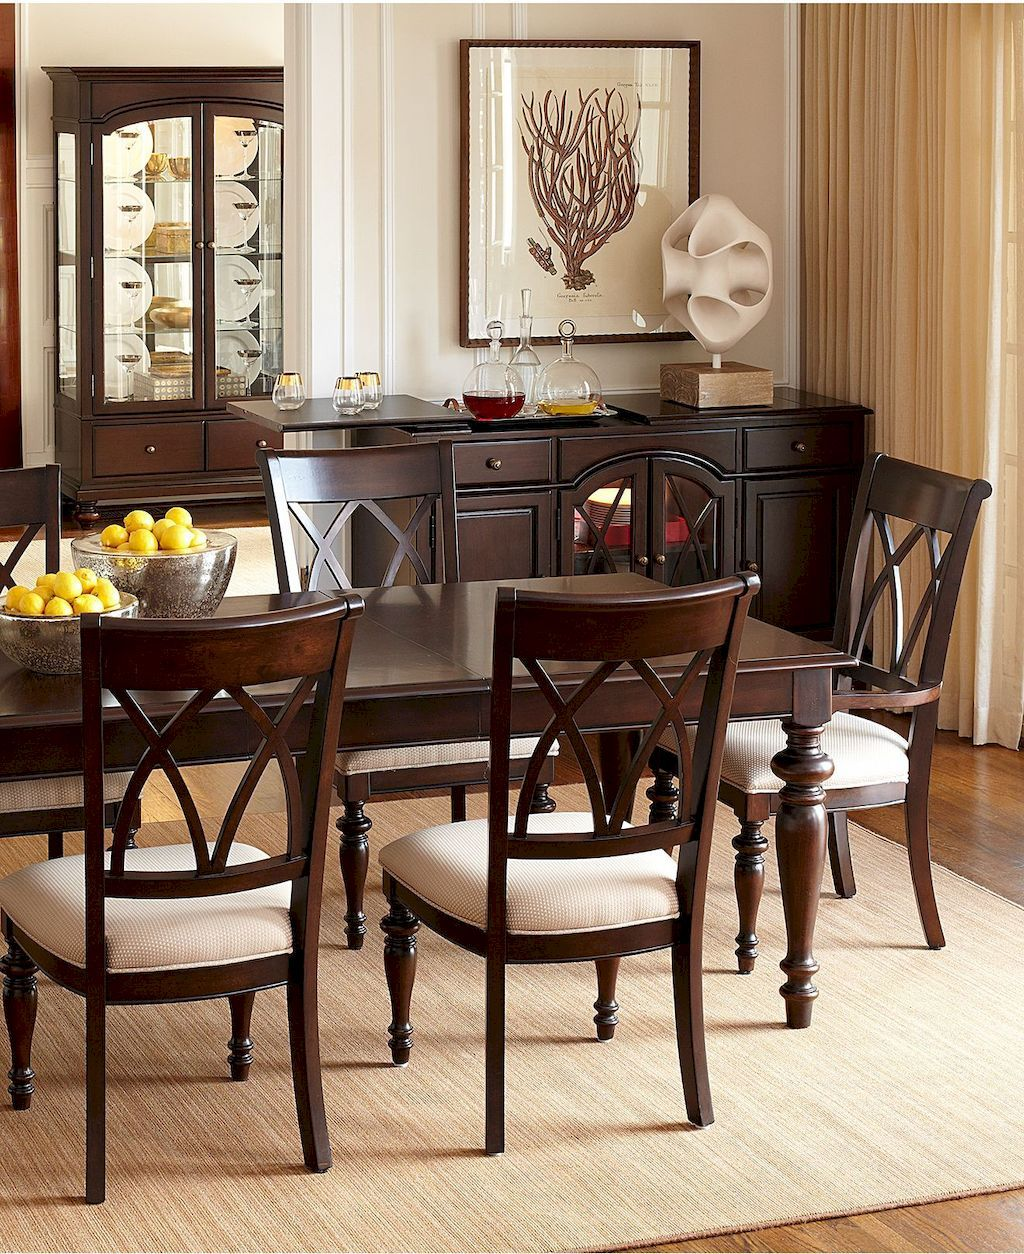 Charming And Cheap Decor Ideas Formal Dining Room: Amazing Ways To Choosing Dining Room Furniture